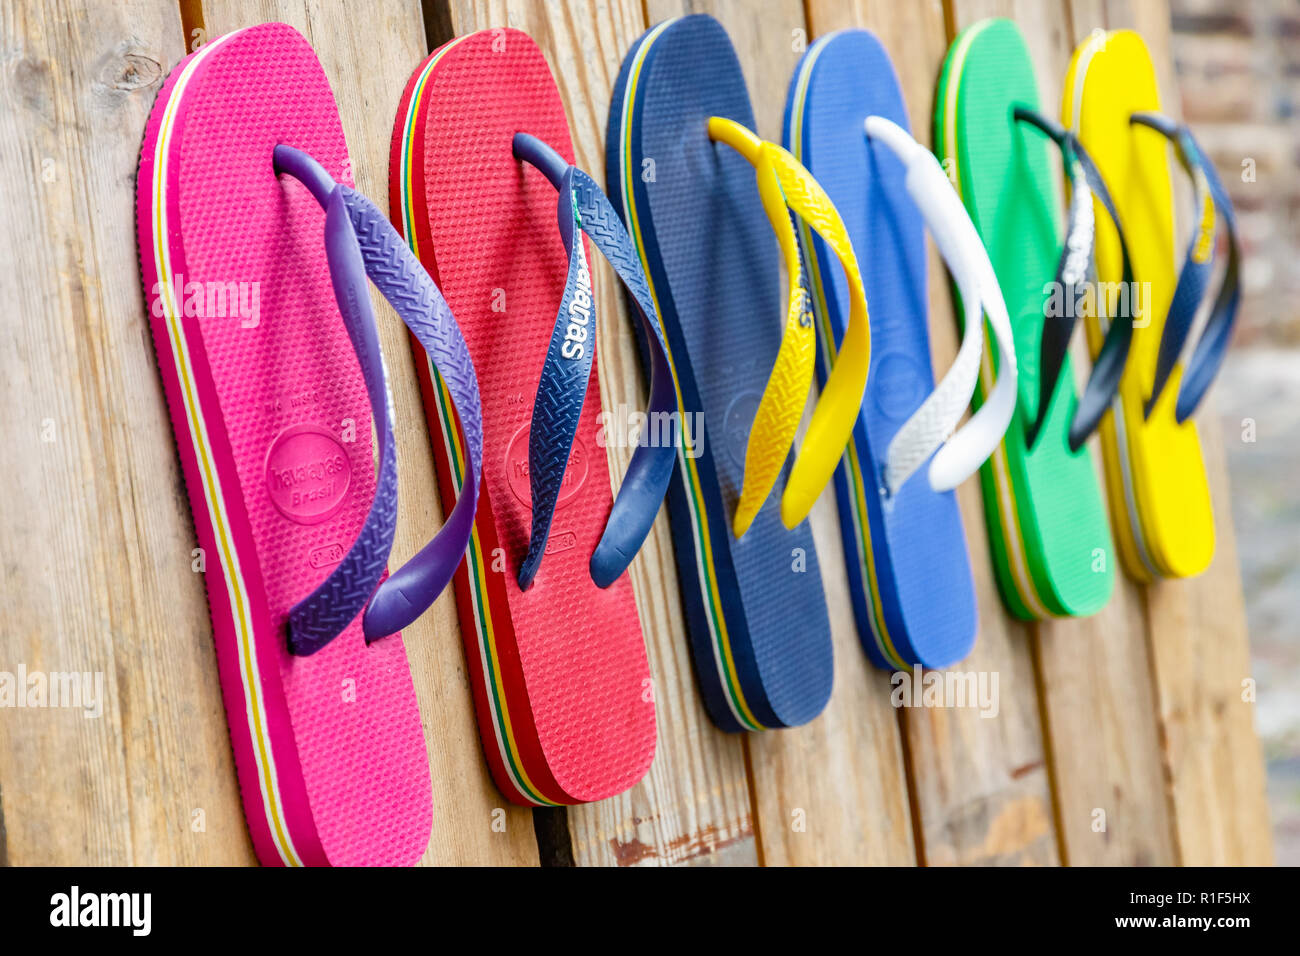 London, UK - September 1, 2018 - Flip flops in various colours on display at Camden Town - Stock Image